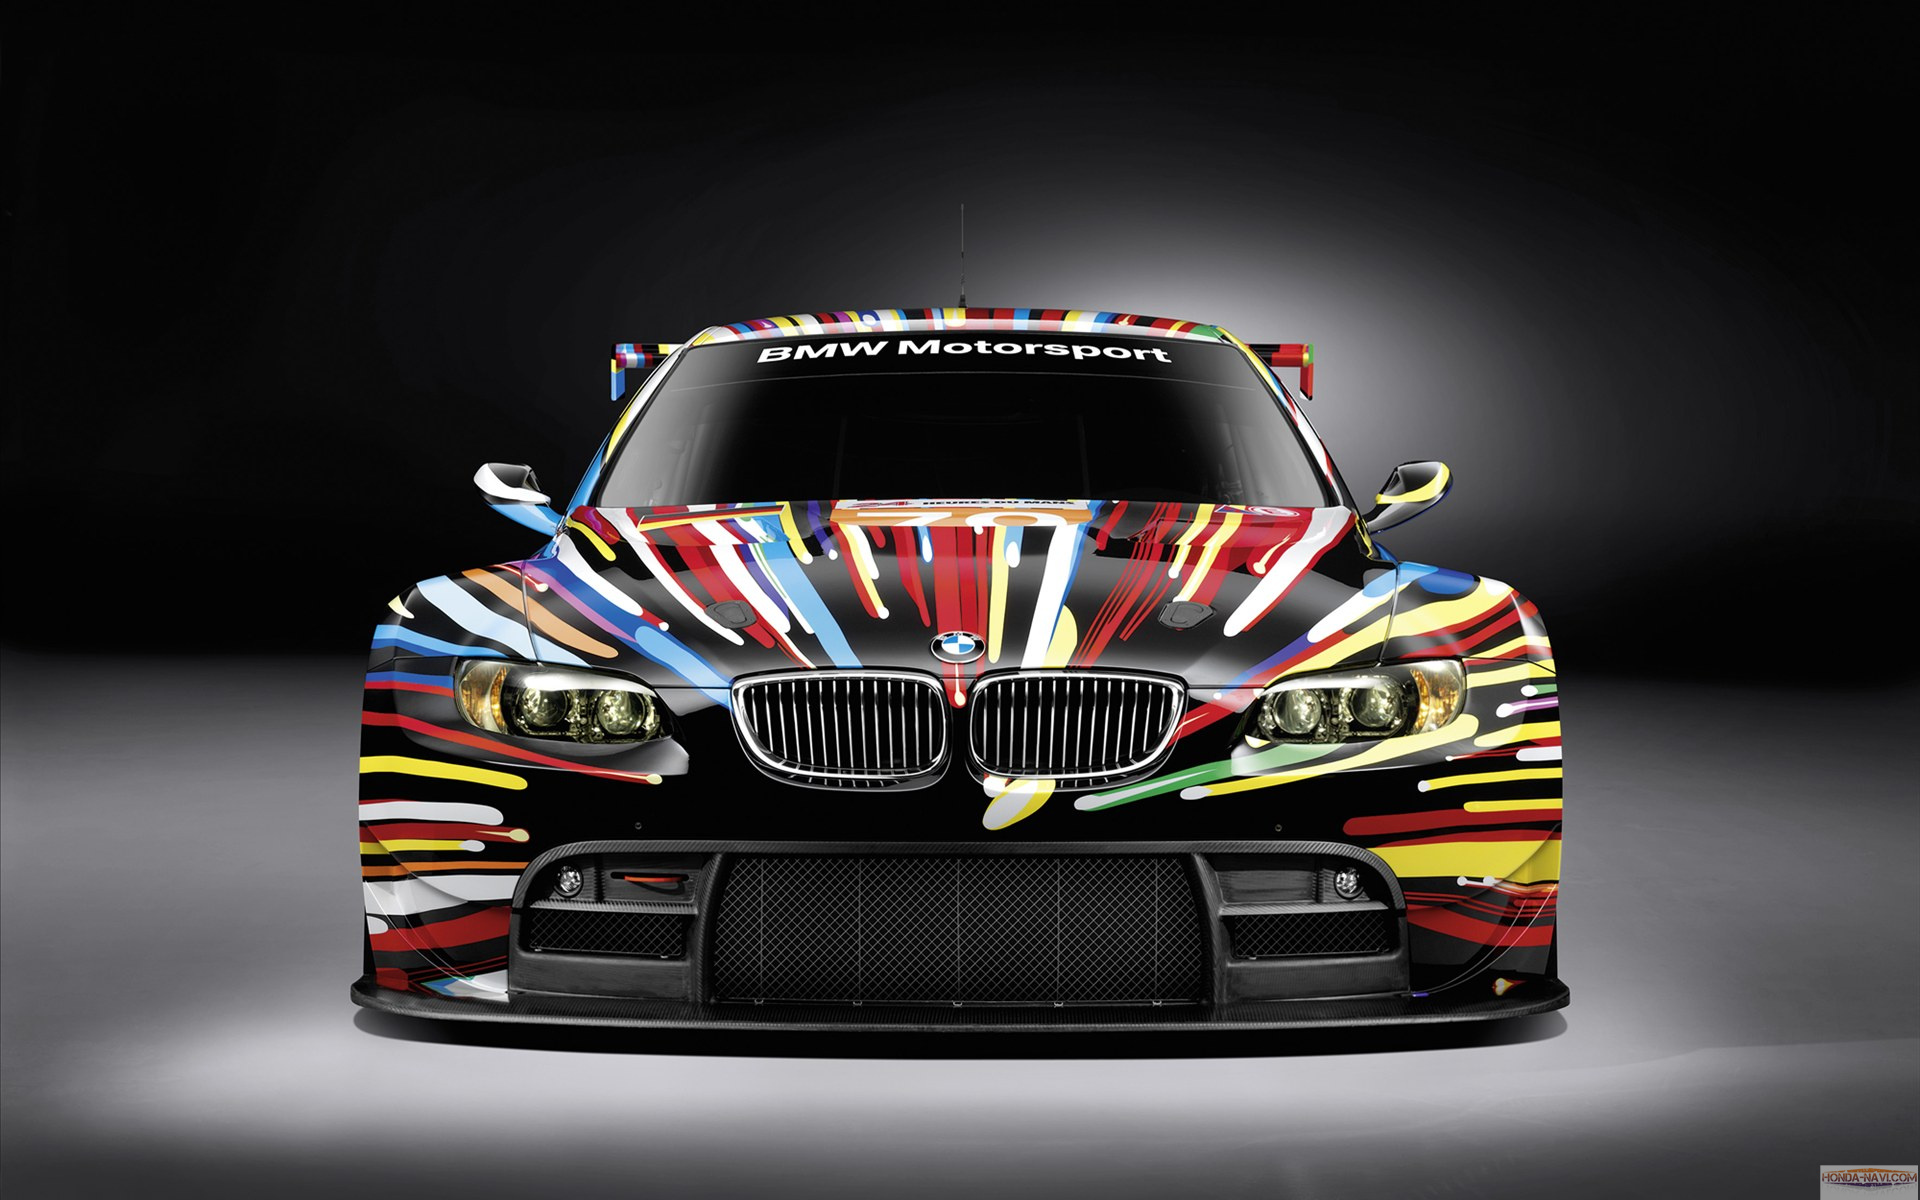 BMW Sport HD Desktop Wallpaper HD Desktop Wallpaper 1920x1200